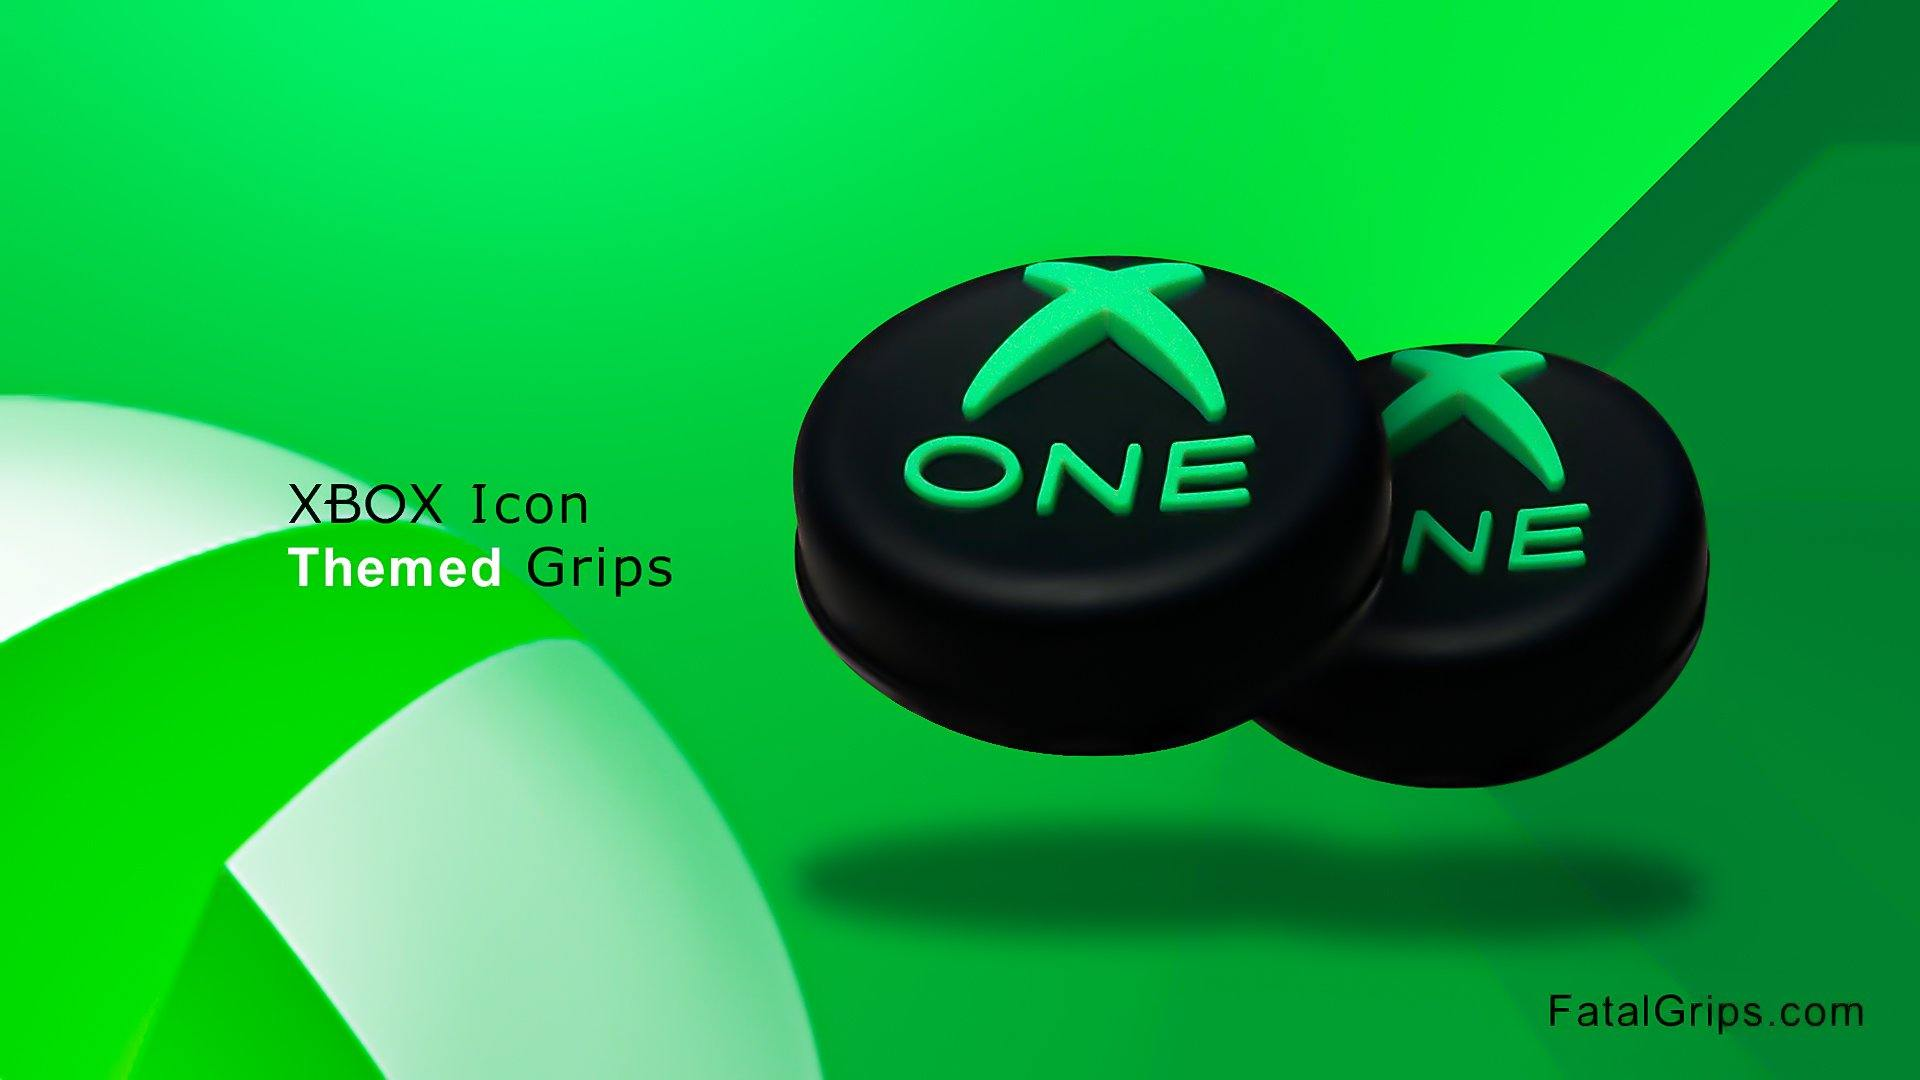 Xbox Icon Themed Grips - Fatal Grips